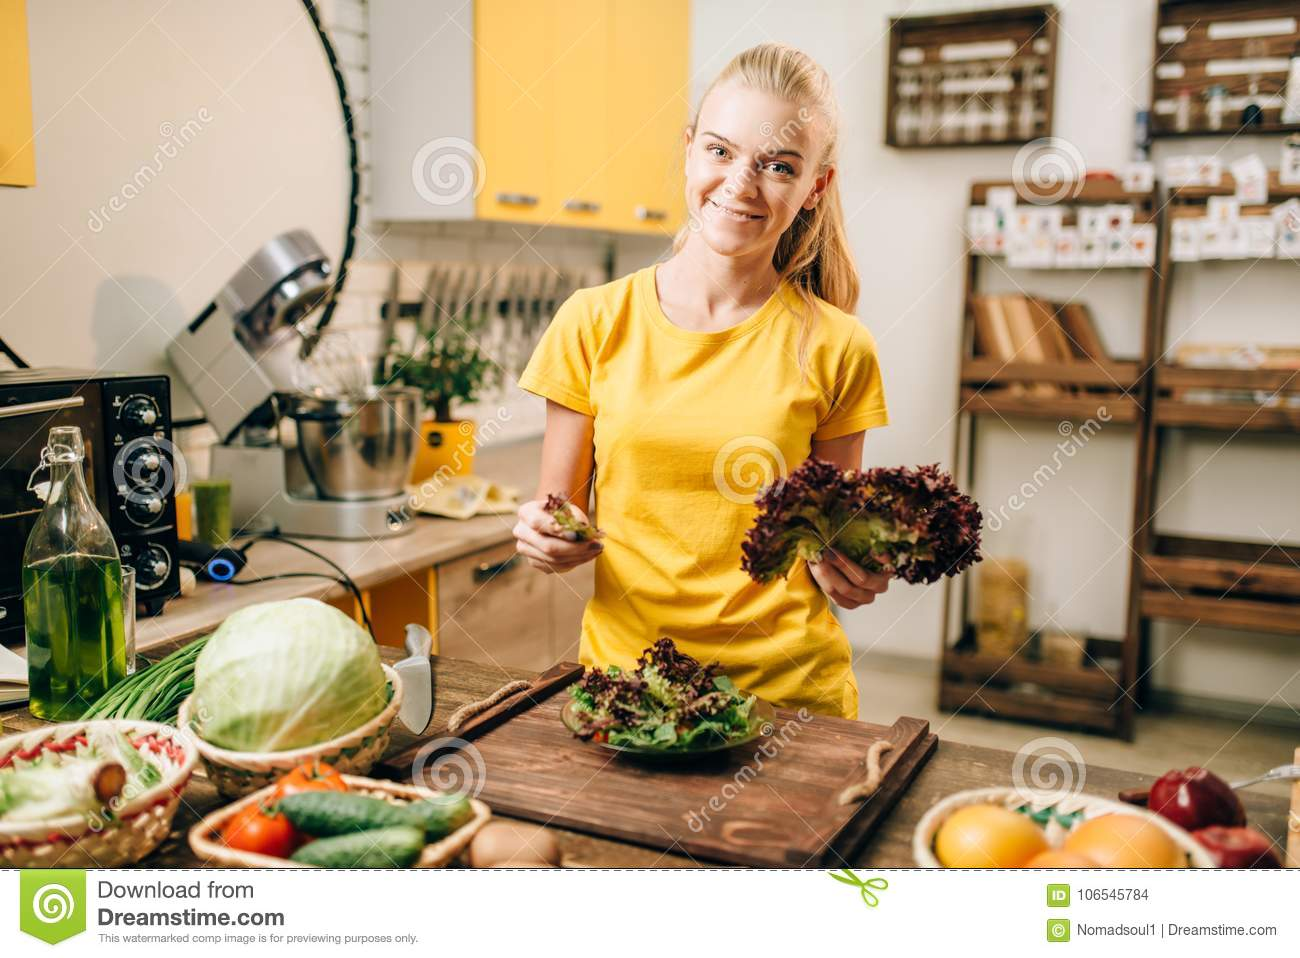 Happy woman holding salad, cooking healthy food